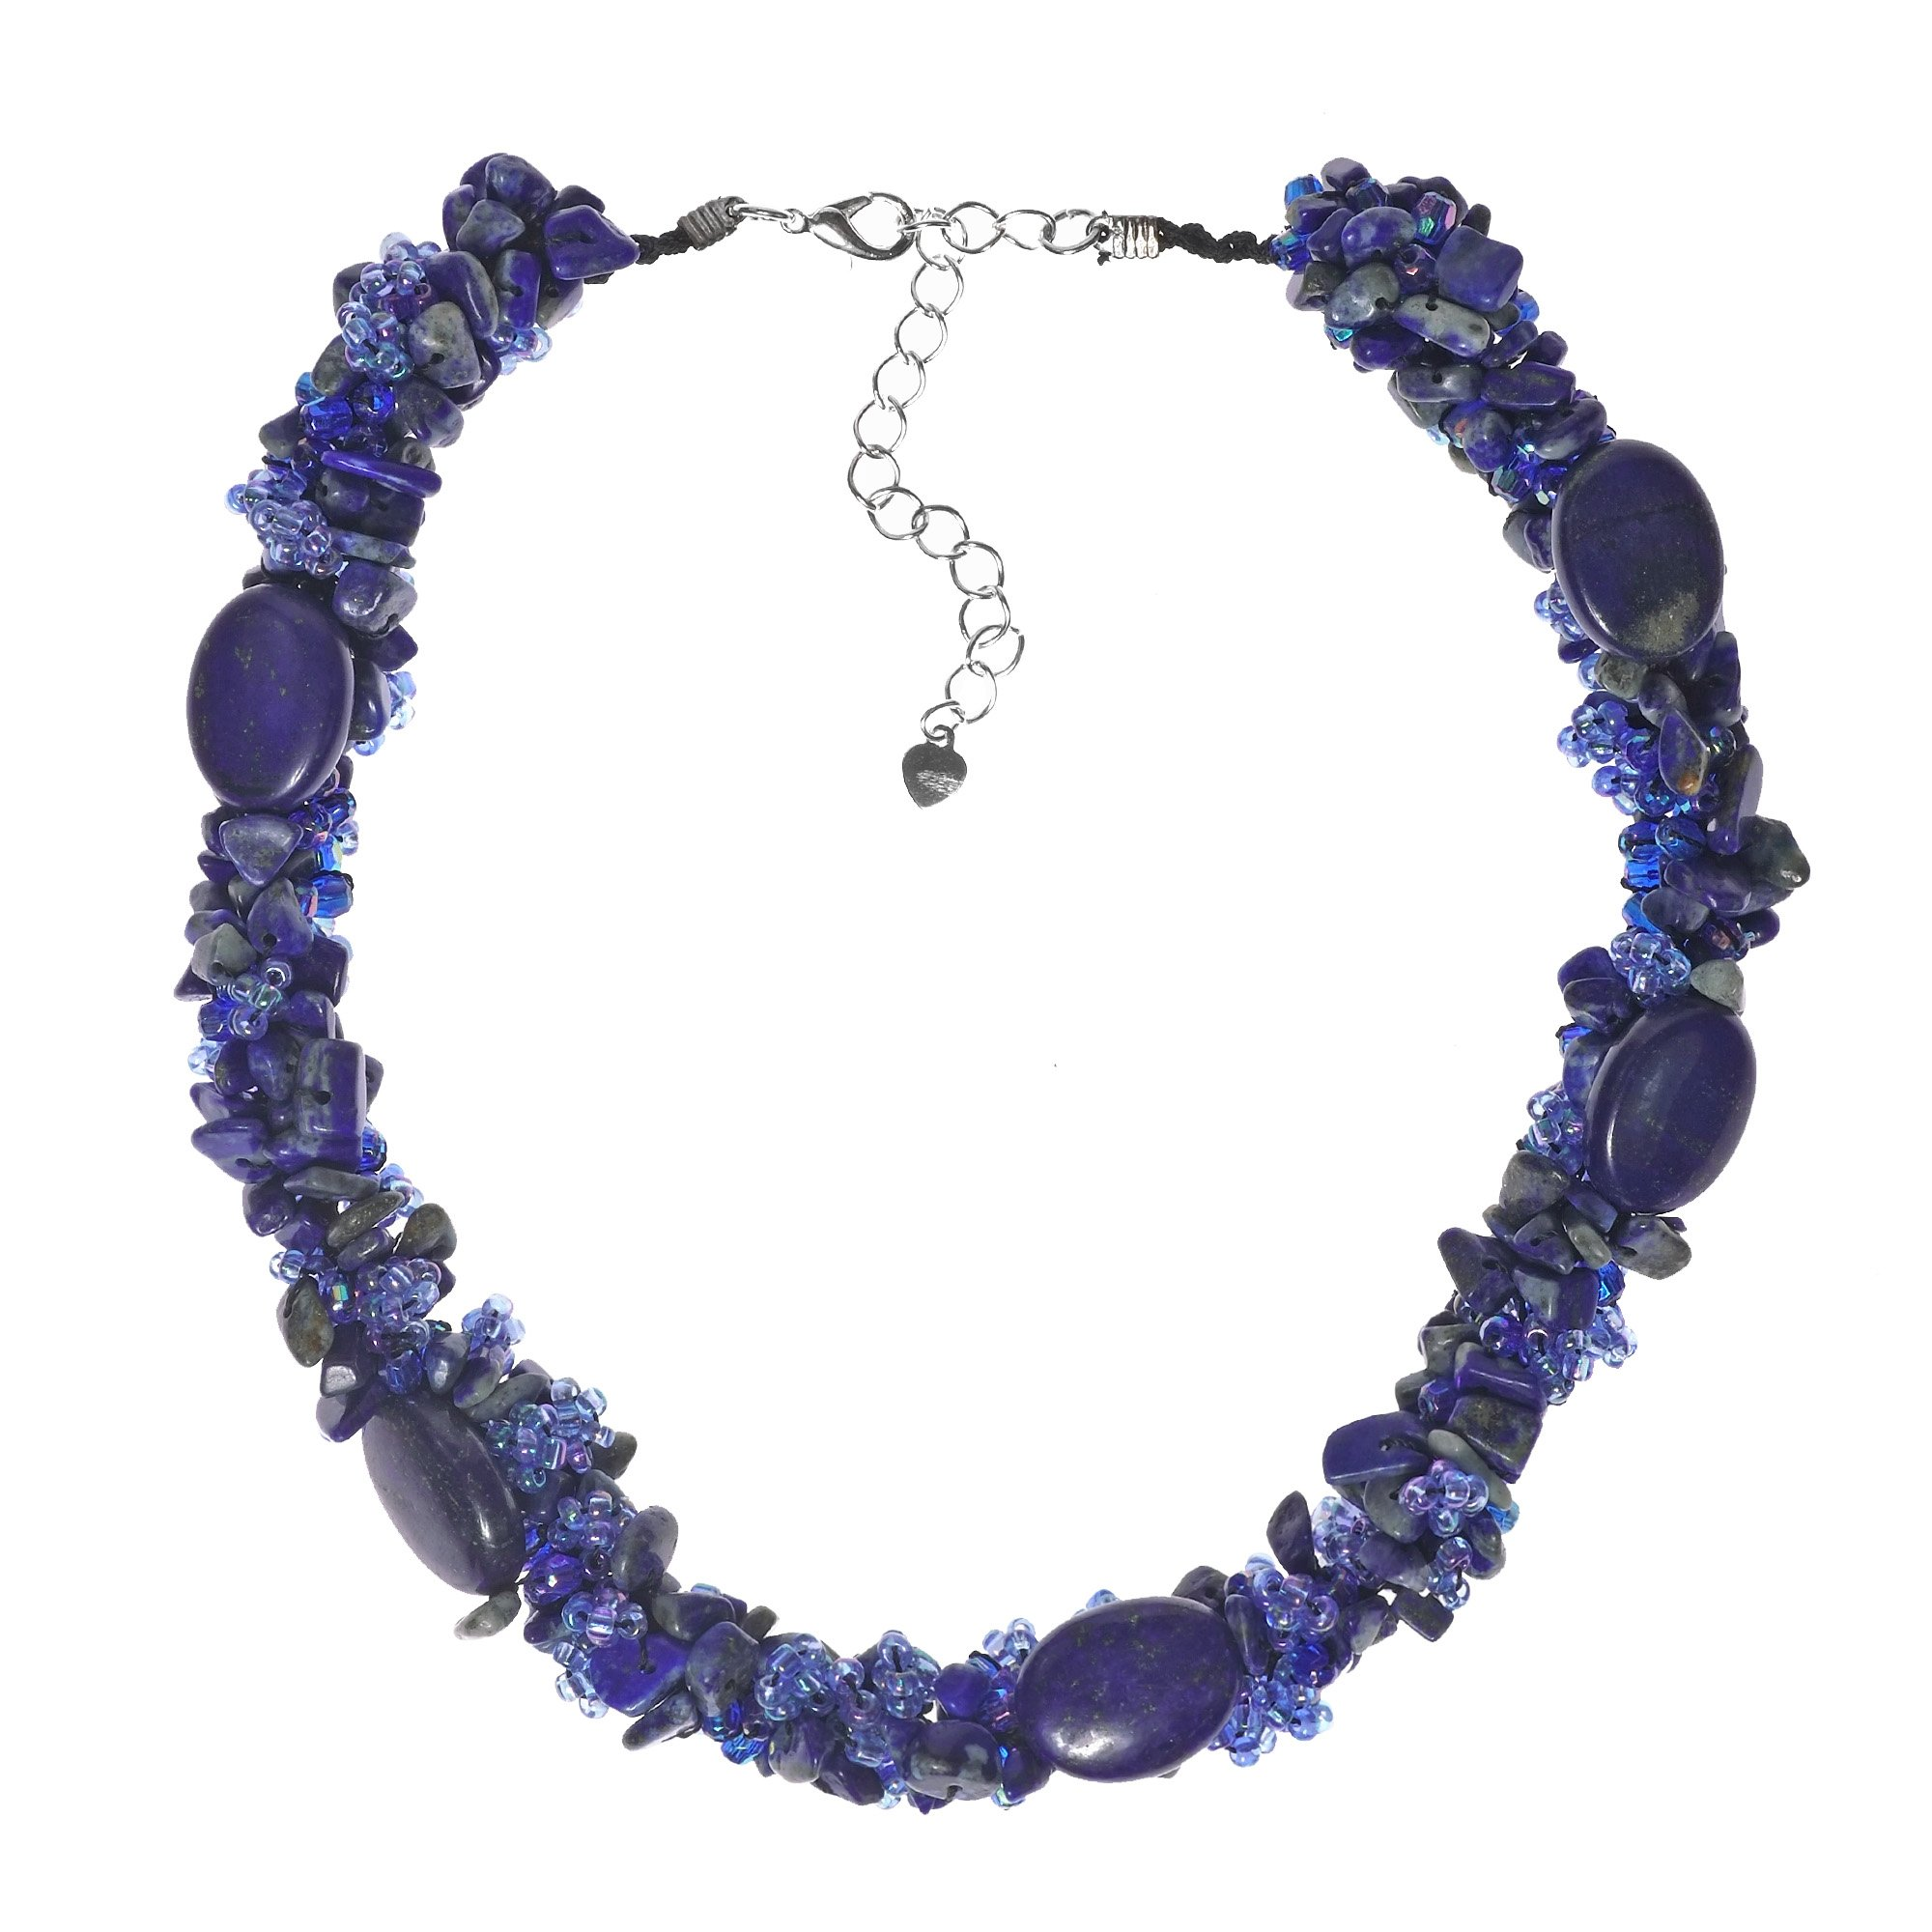 AeraVida Navy Oval Reconstructed Blue Lapis-Lazuli with Seed Beads Clustered Chunky Strand Necklace